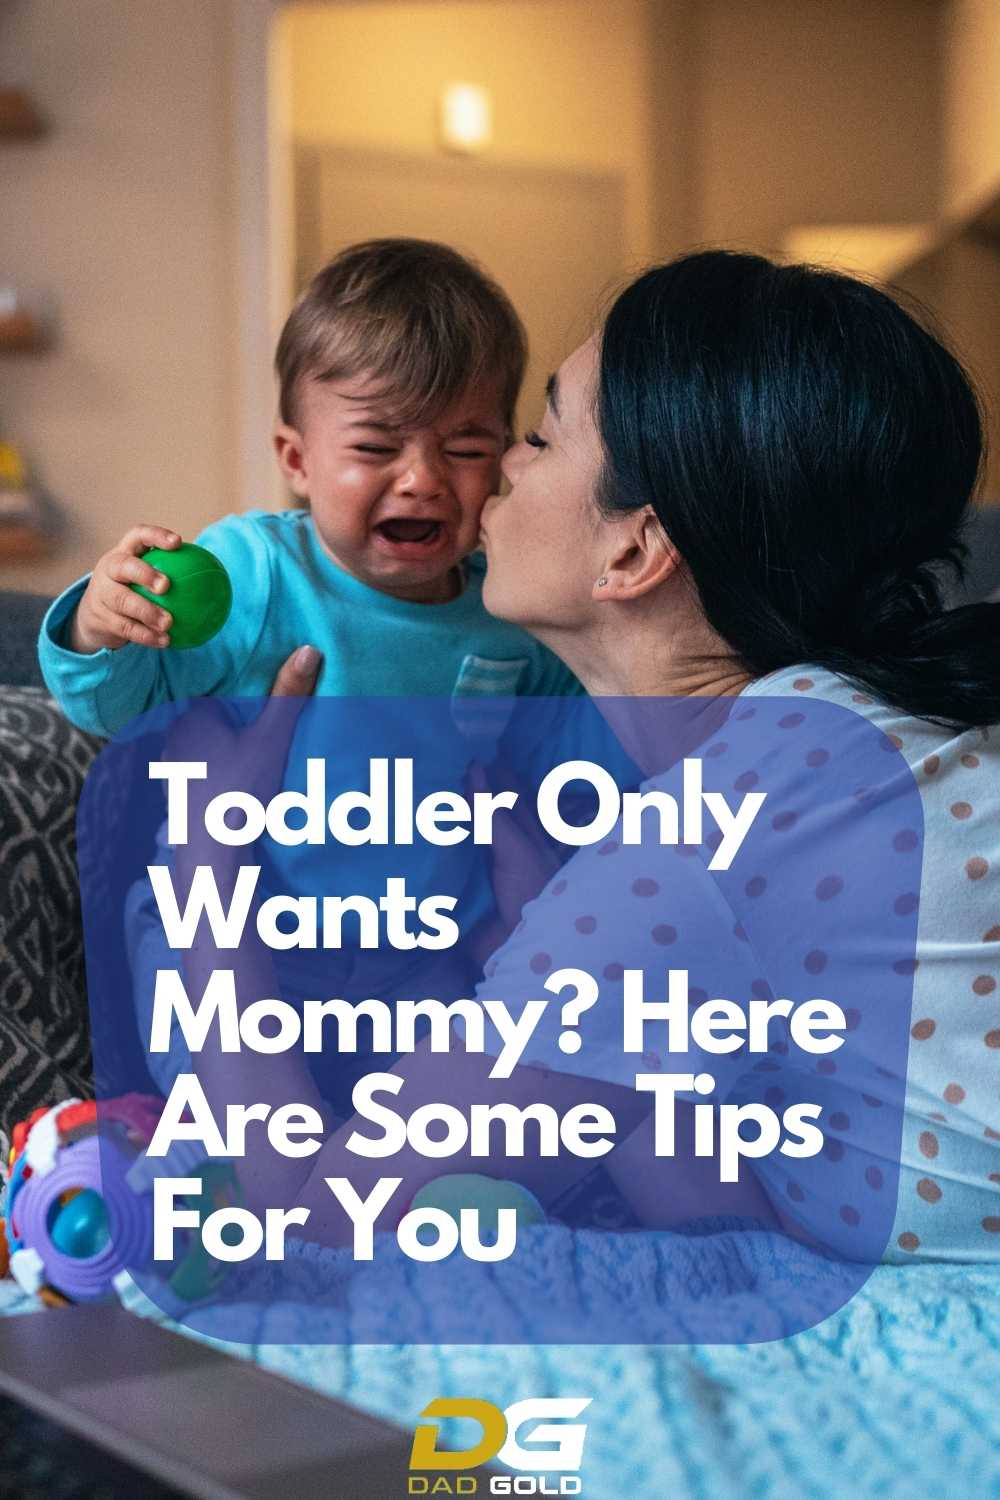 Toddler Only Wants Mommy Here Are Some Tips For You